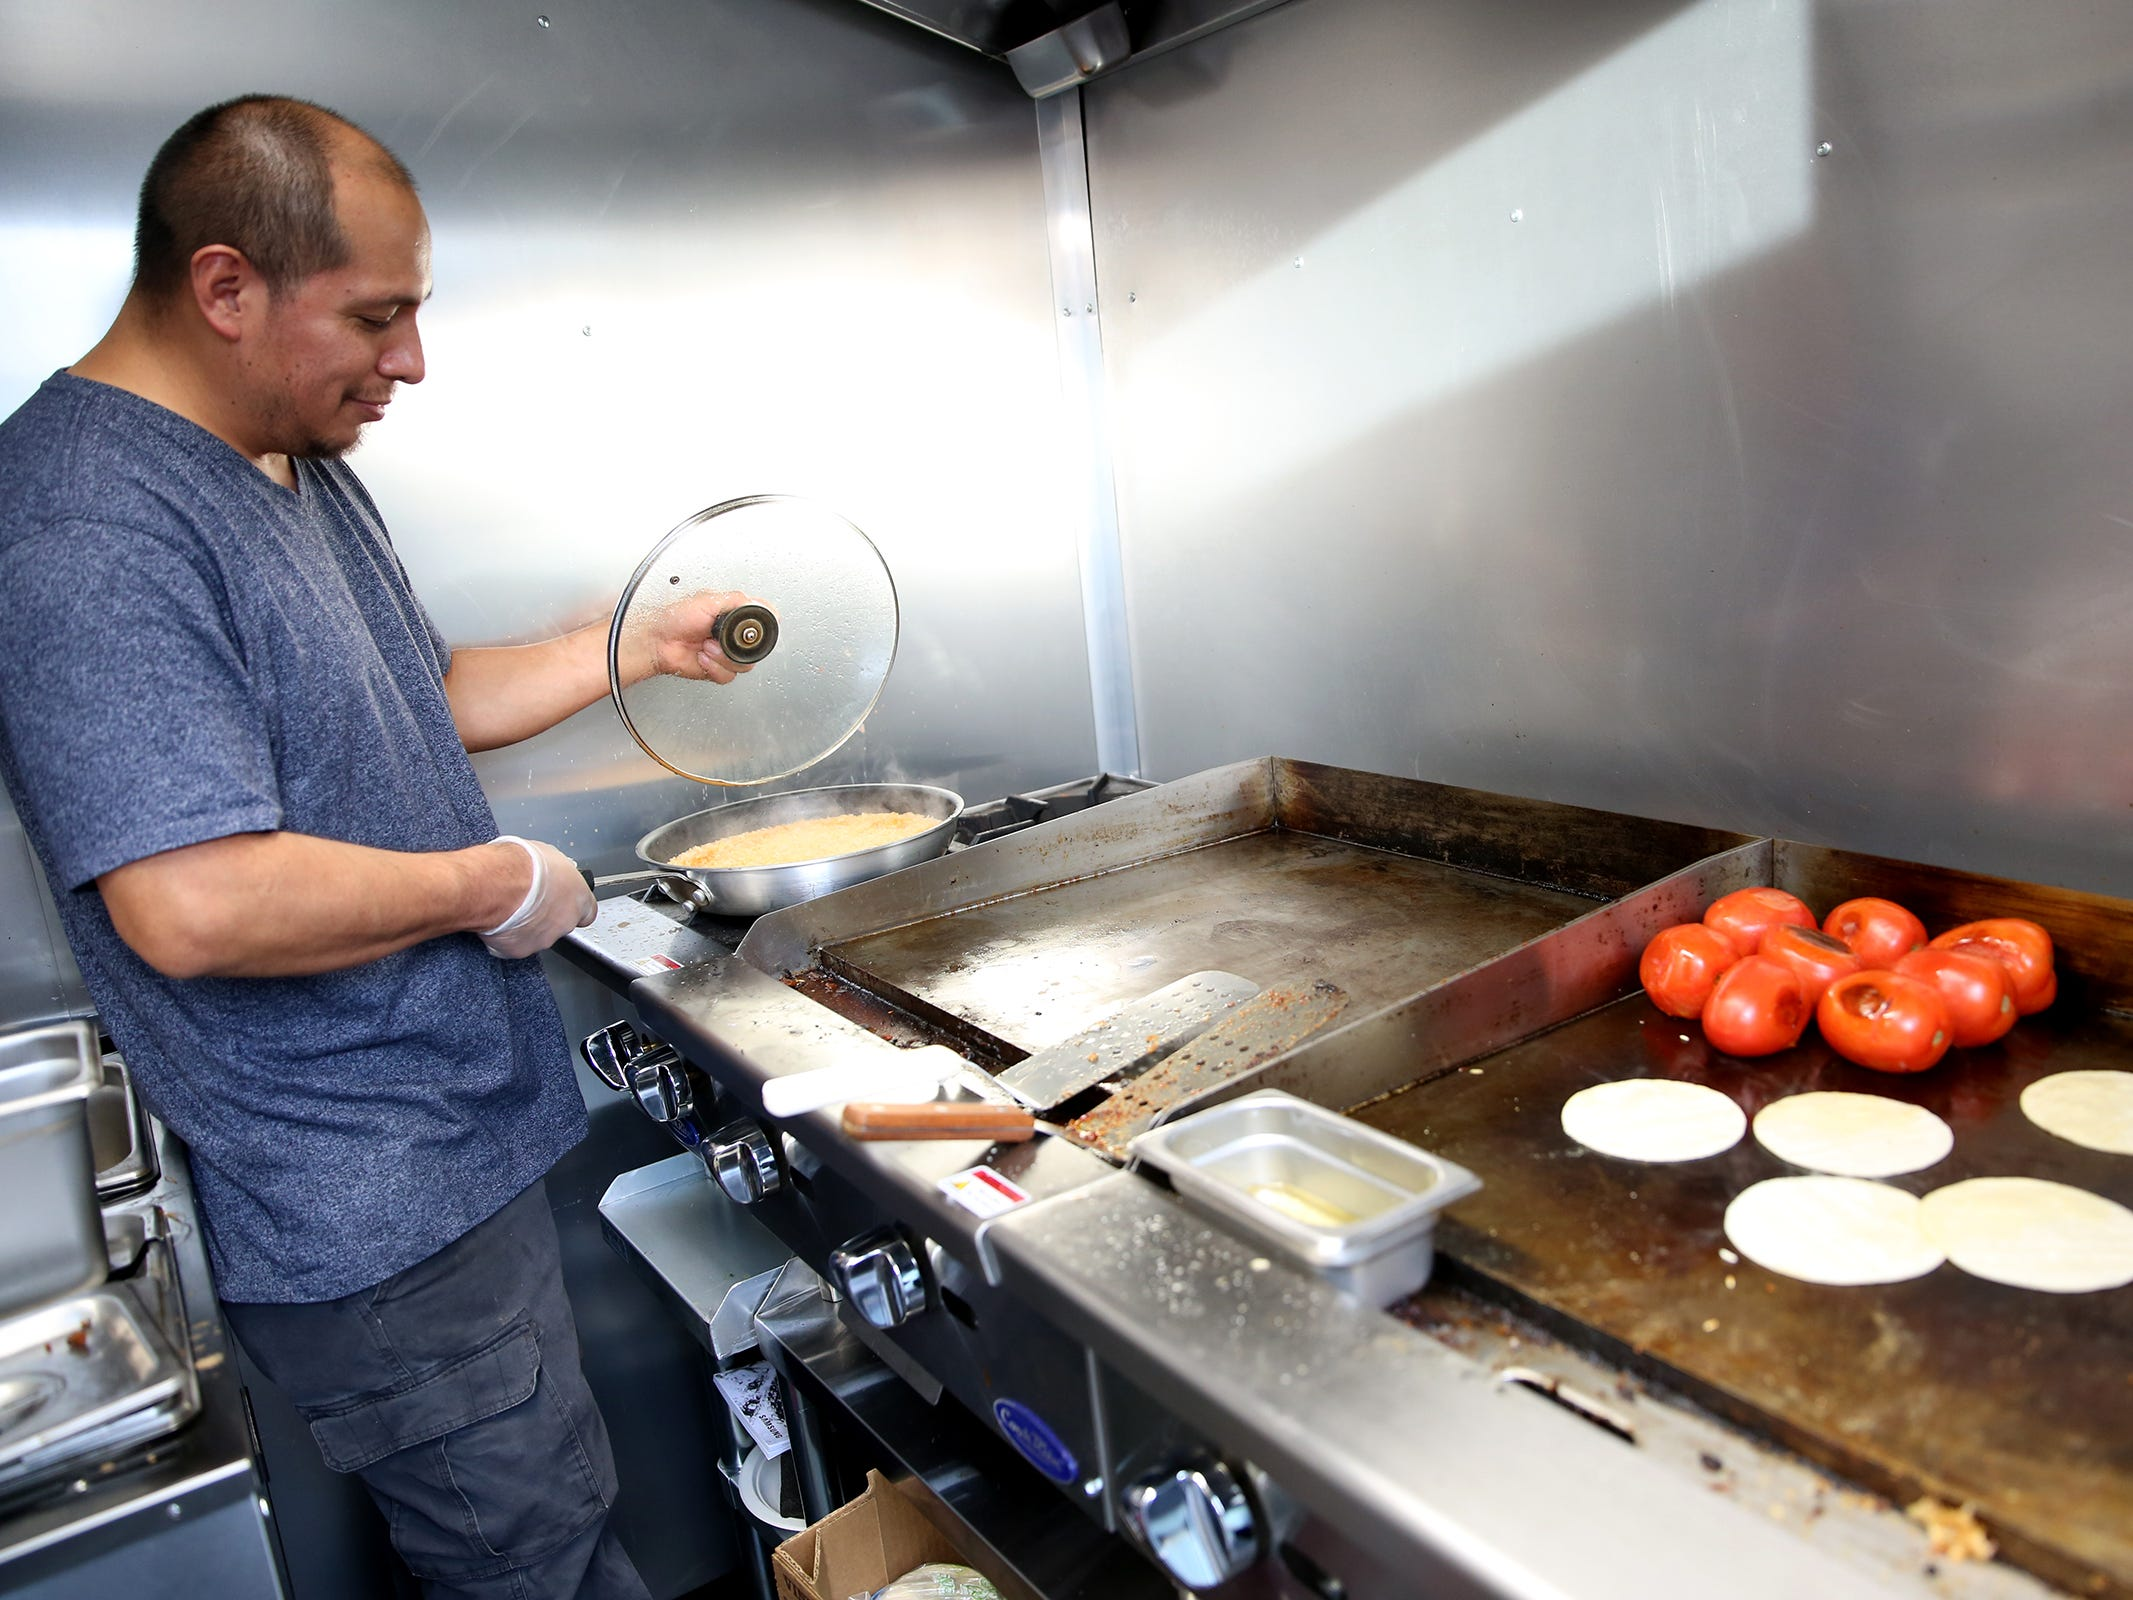 Owner of Paco's Mexican Food, Israel Garcia, prepares al pastor tacos in his food truck on opening day of The Yard Food Park in Salem on Thursday, Dec. 13, 2018.